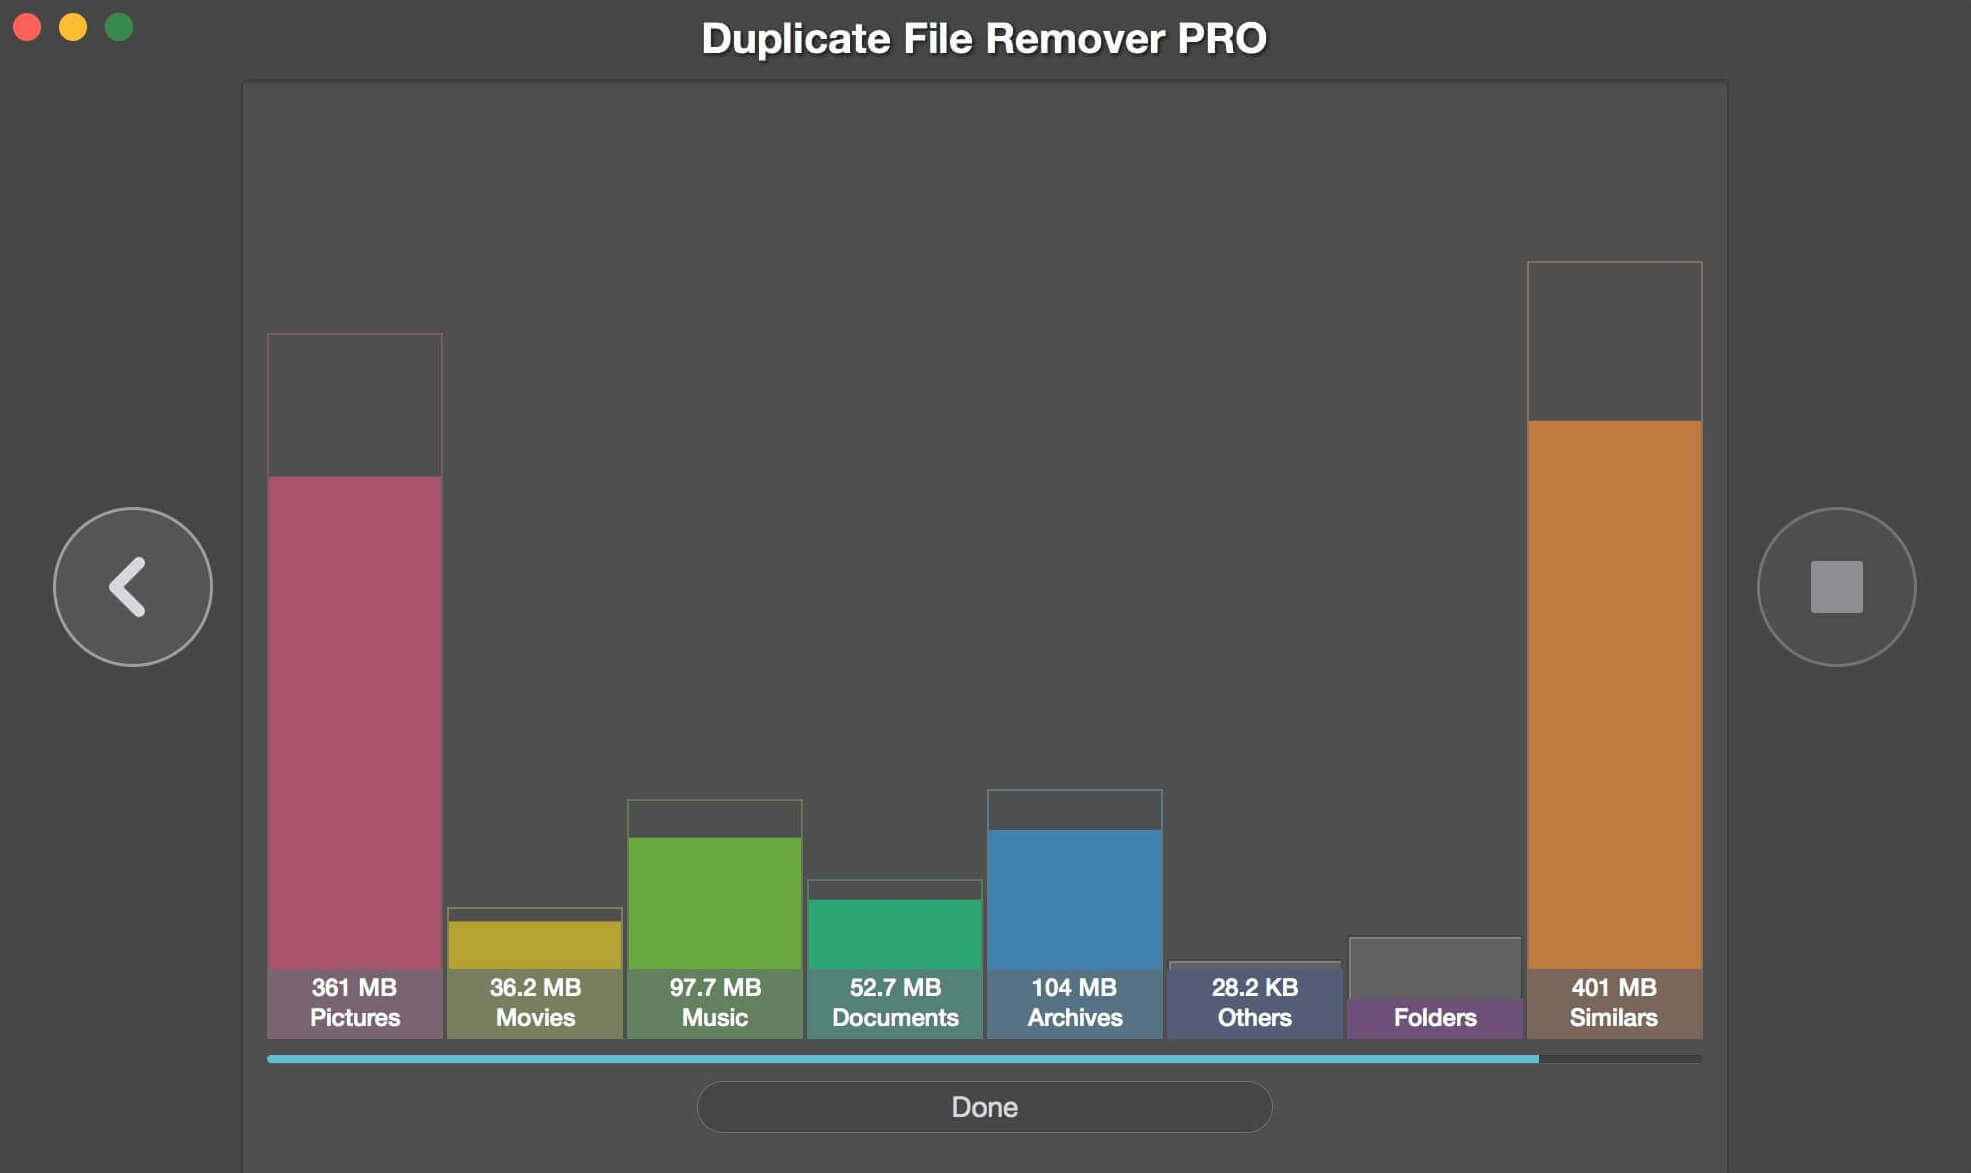 Duplicate File Remover Pro chart